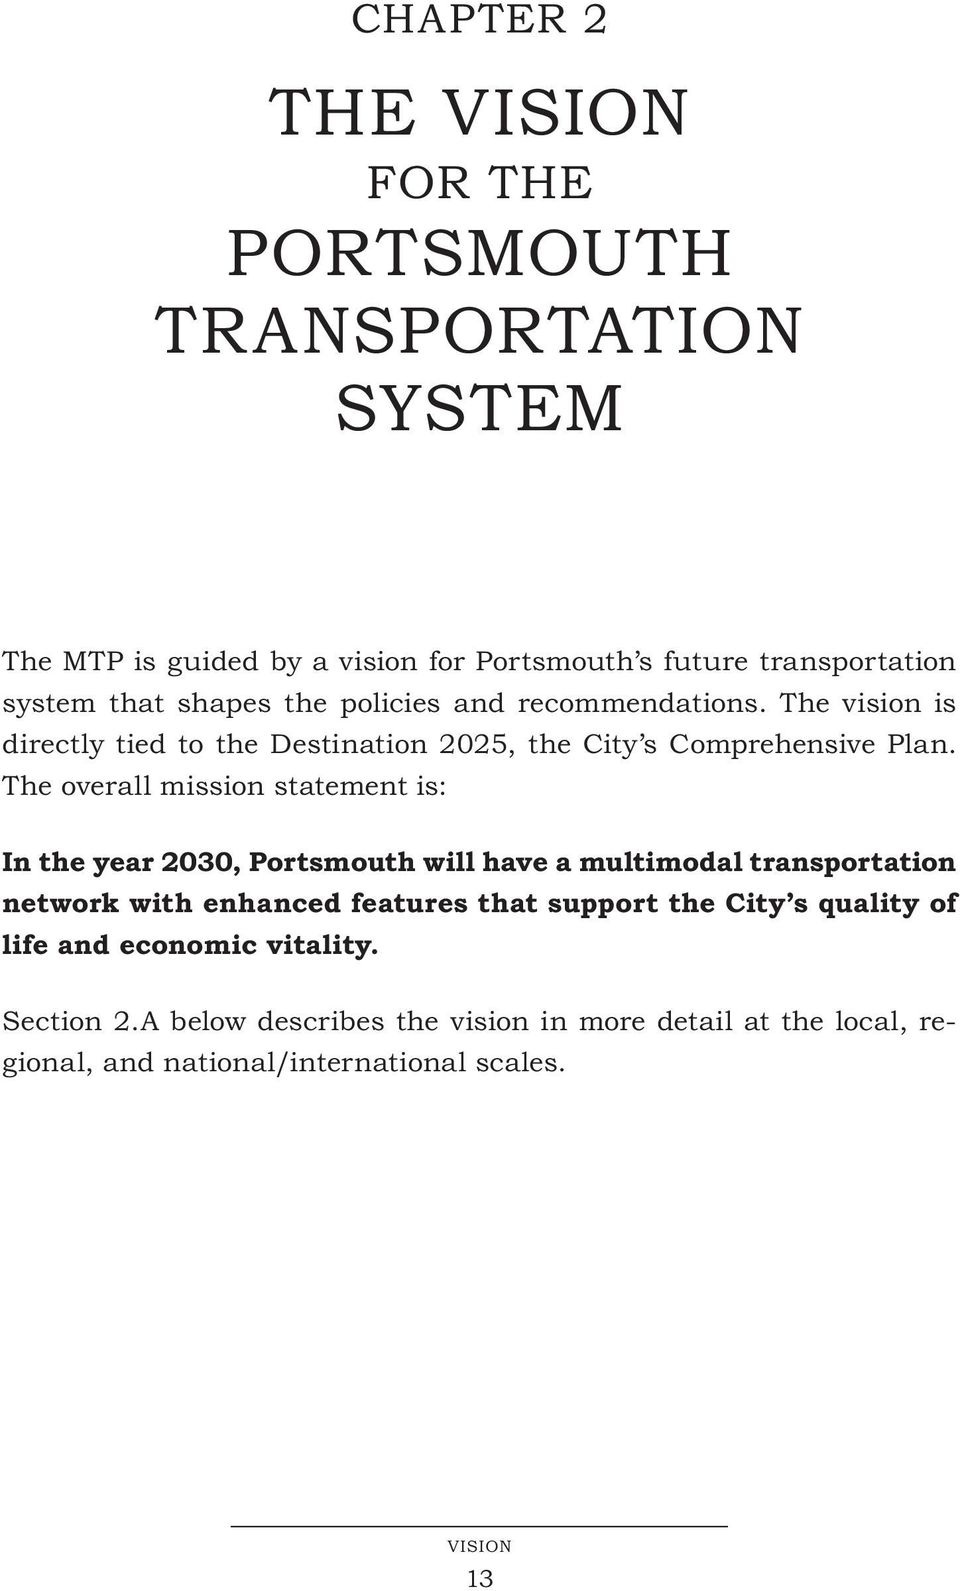 The overall mission statement is: In the year 2030, Portsmouth will have a multimodal transportation network with enhanced features that support